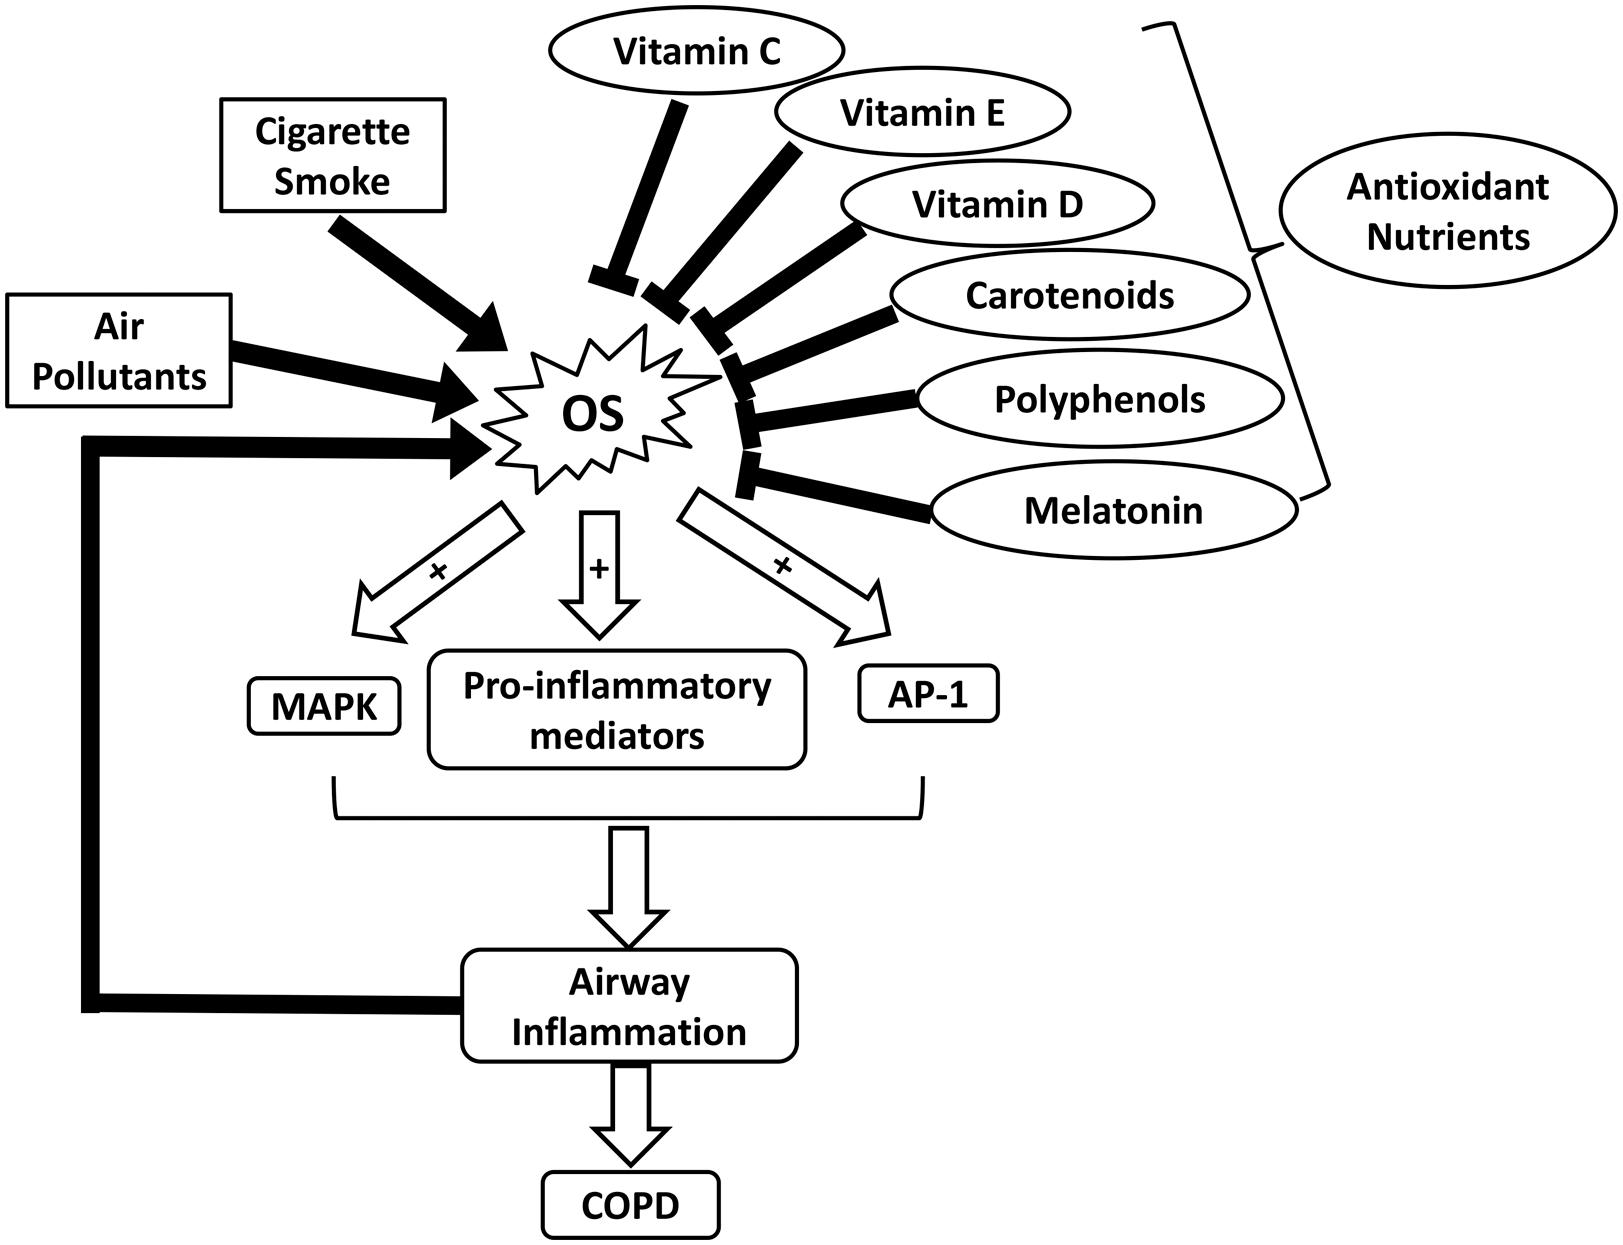 frontiers role of ros and nutritional antioxidants in human Dietary Comedy frontiersin